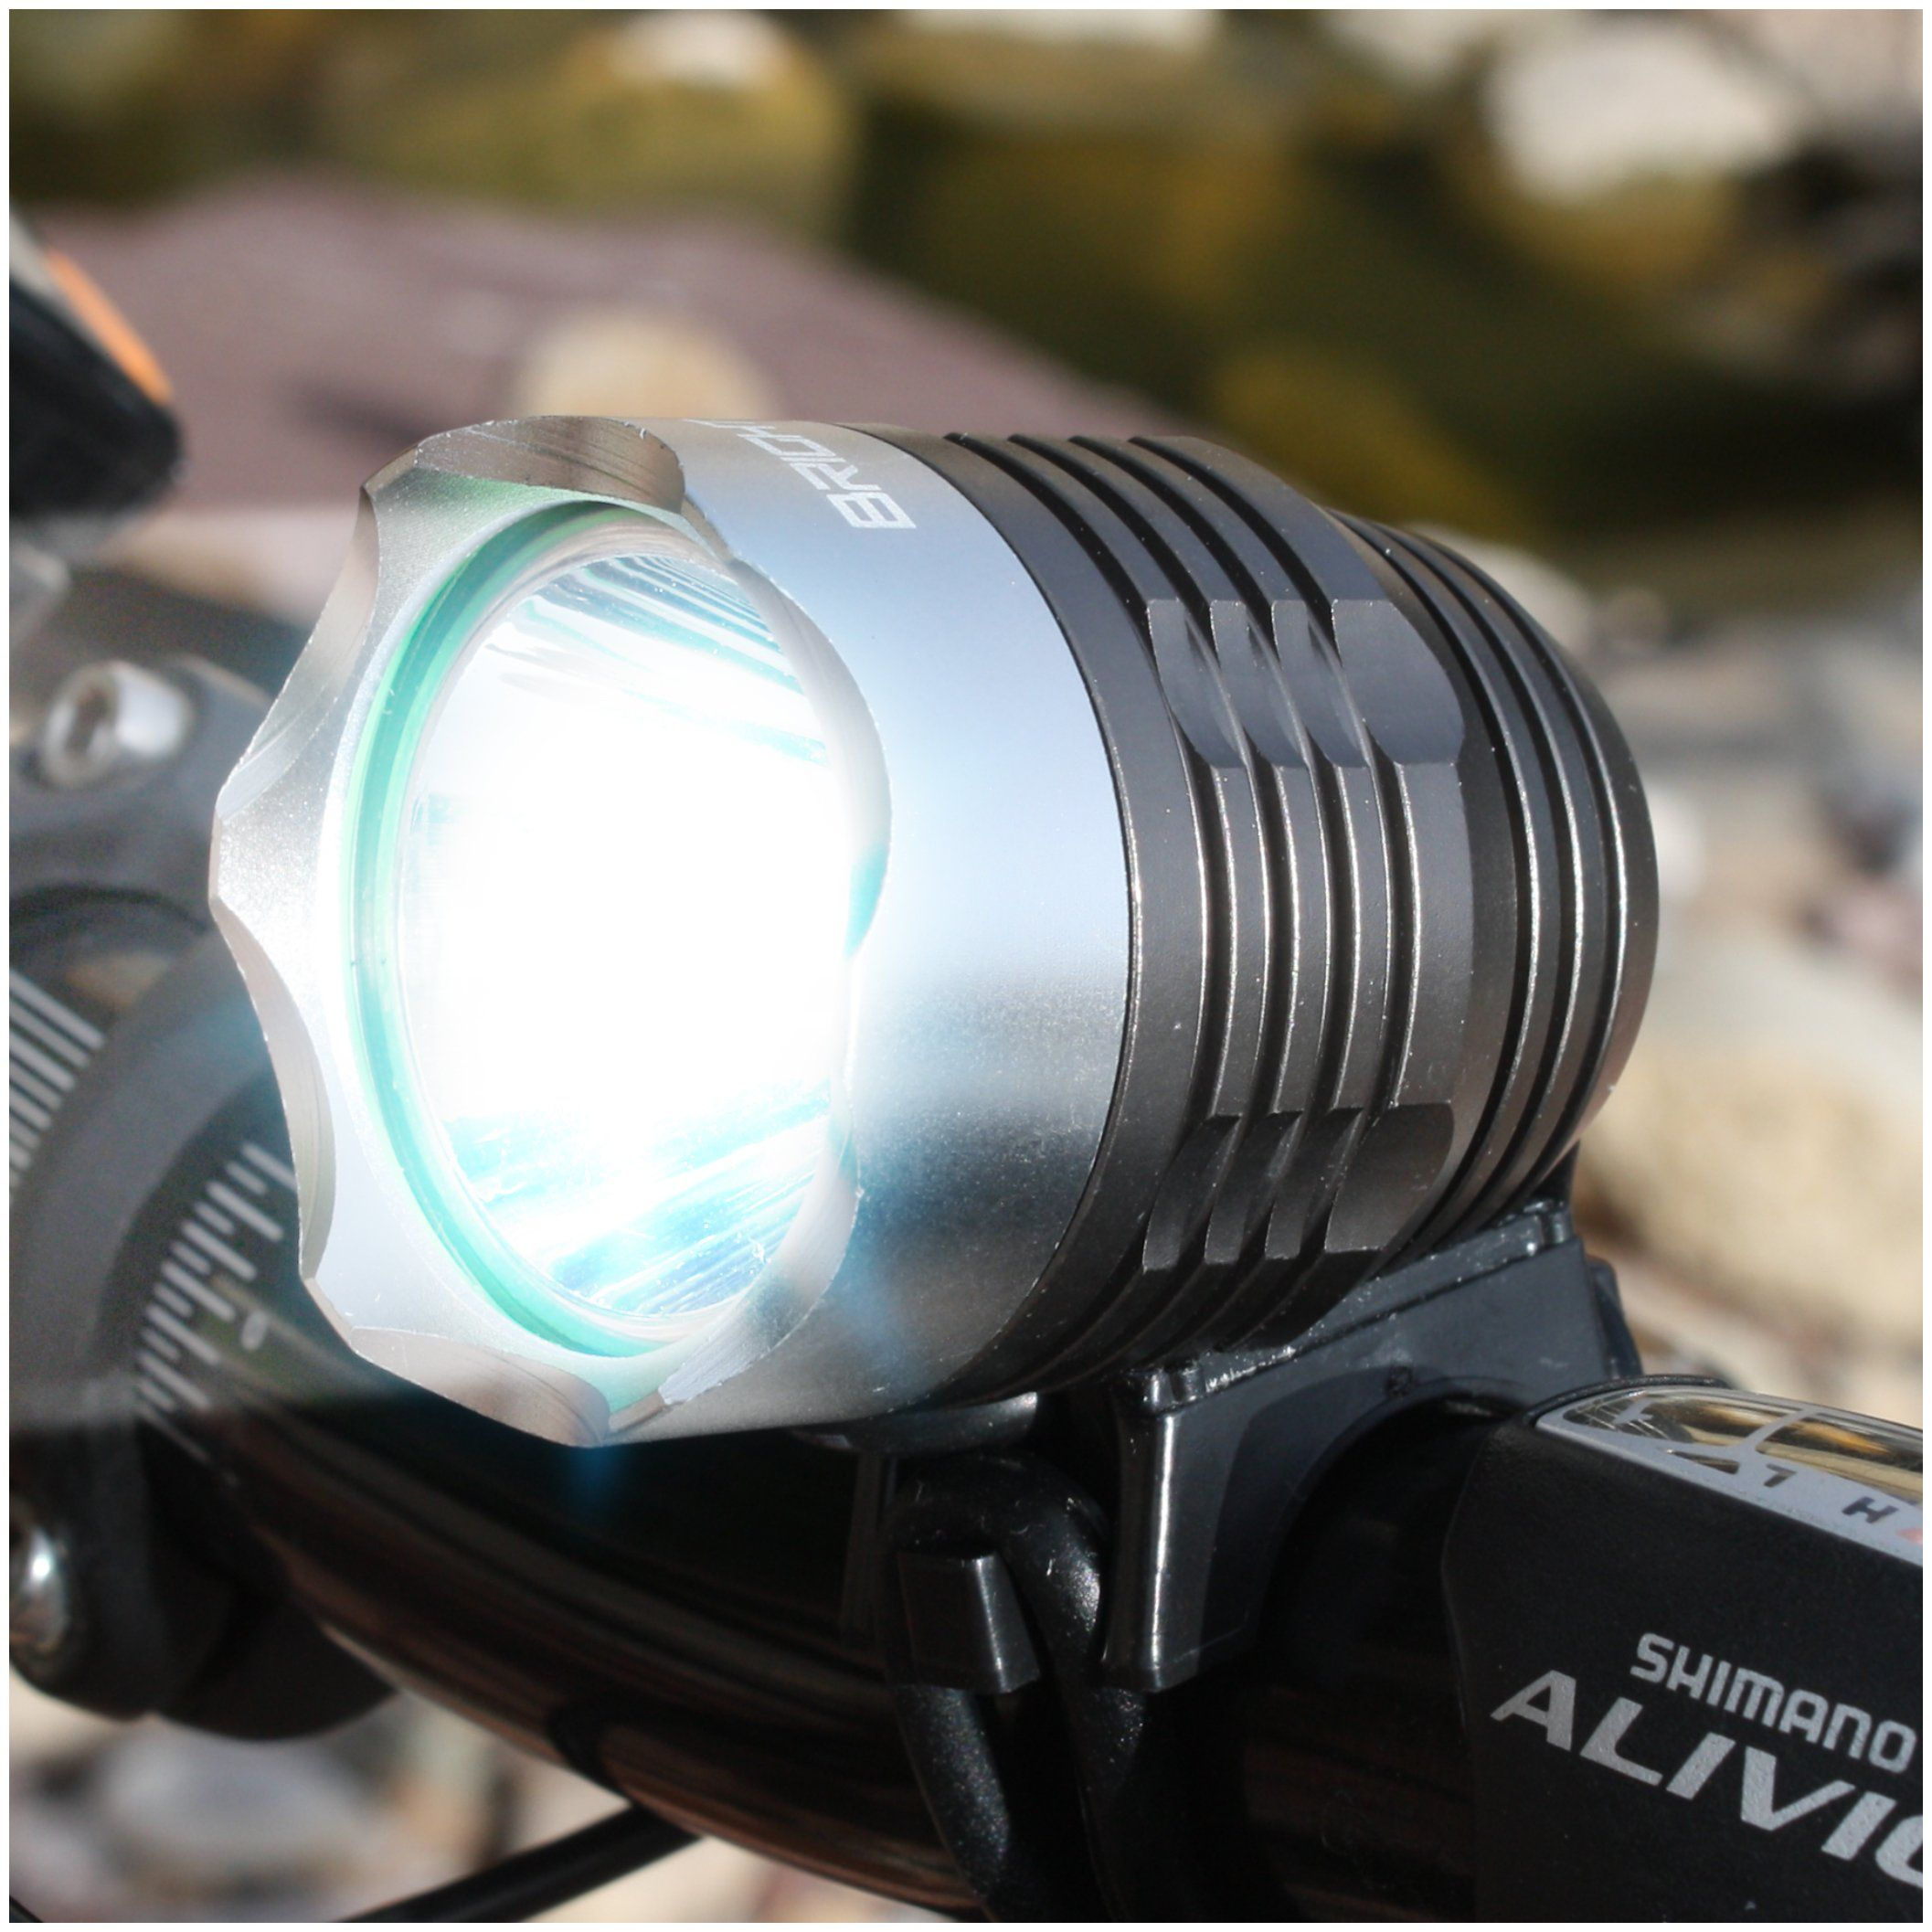 Bright Eyes Rechargeable POWERFUL 1200 LUMENS Bike Headlight   4 NEWLY  UPGRADED FEATURES And ADDITIONS (